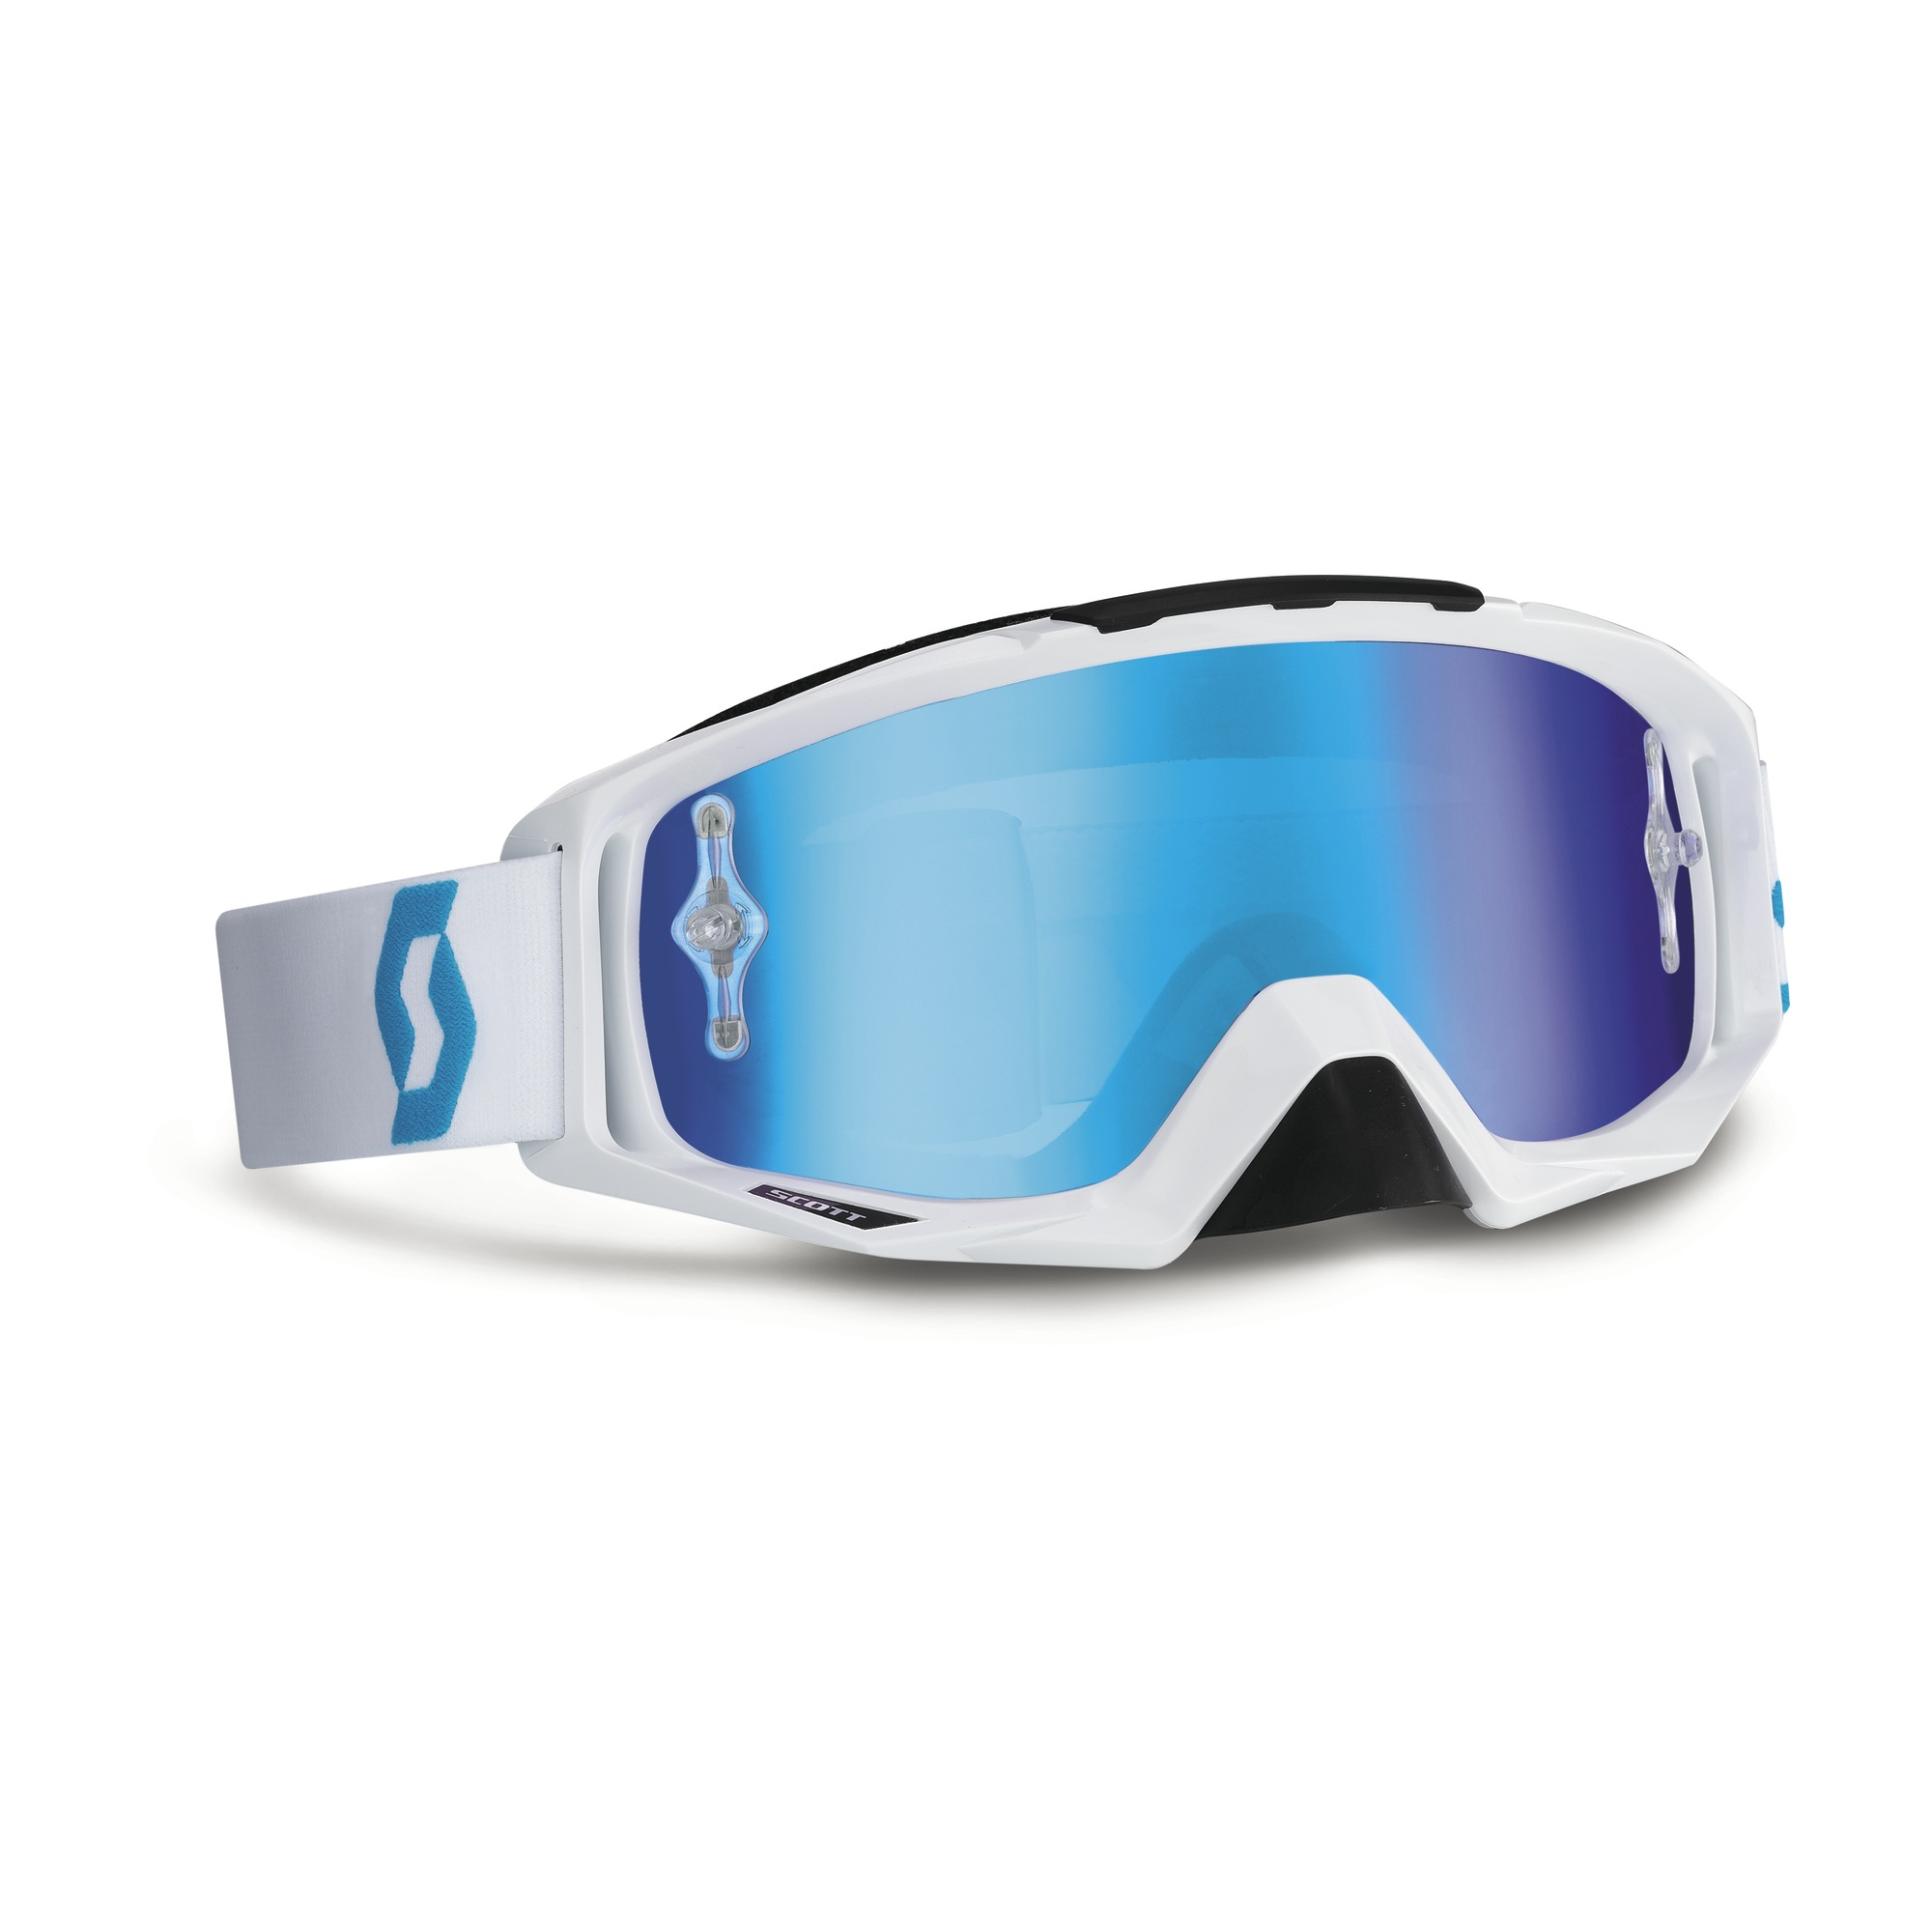 Scott Oxide Tyrant cross goggles White Blue